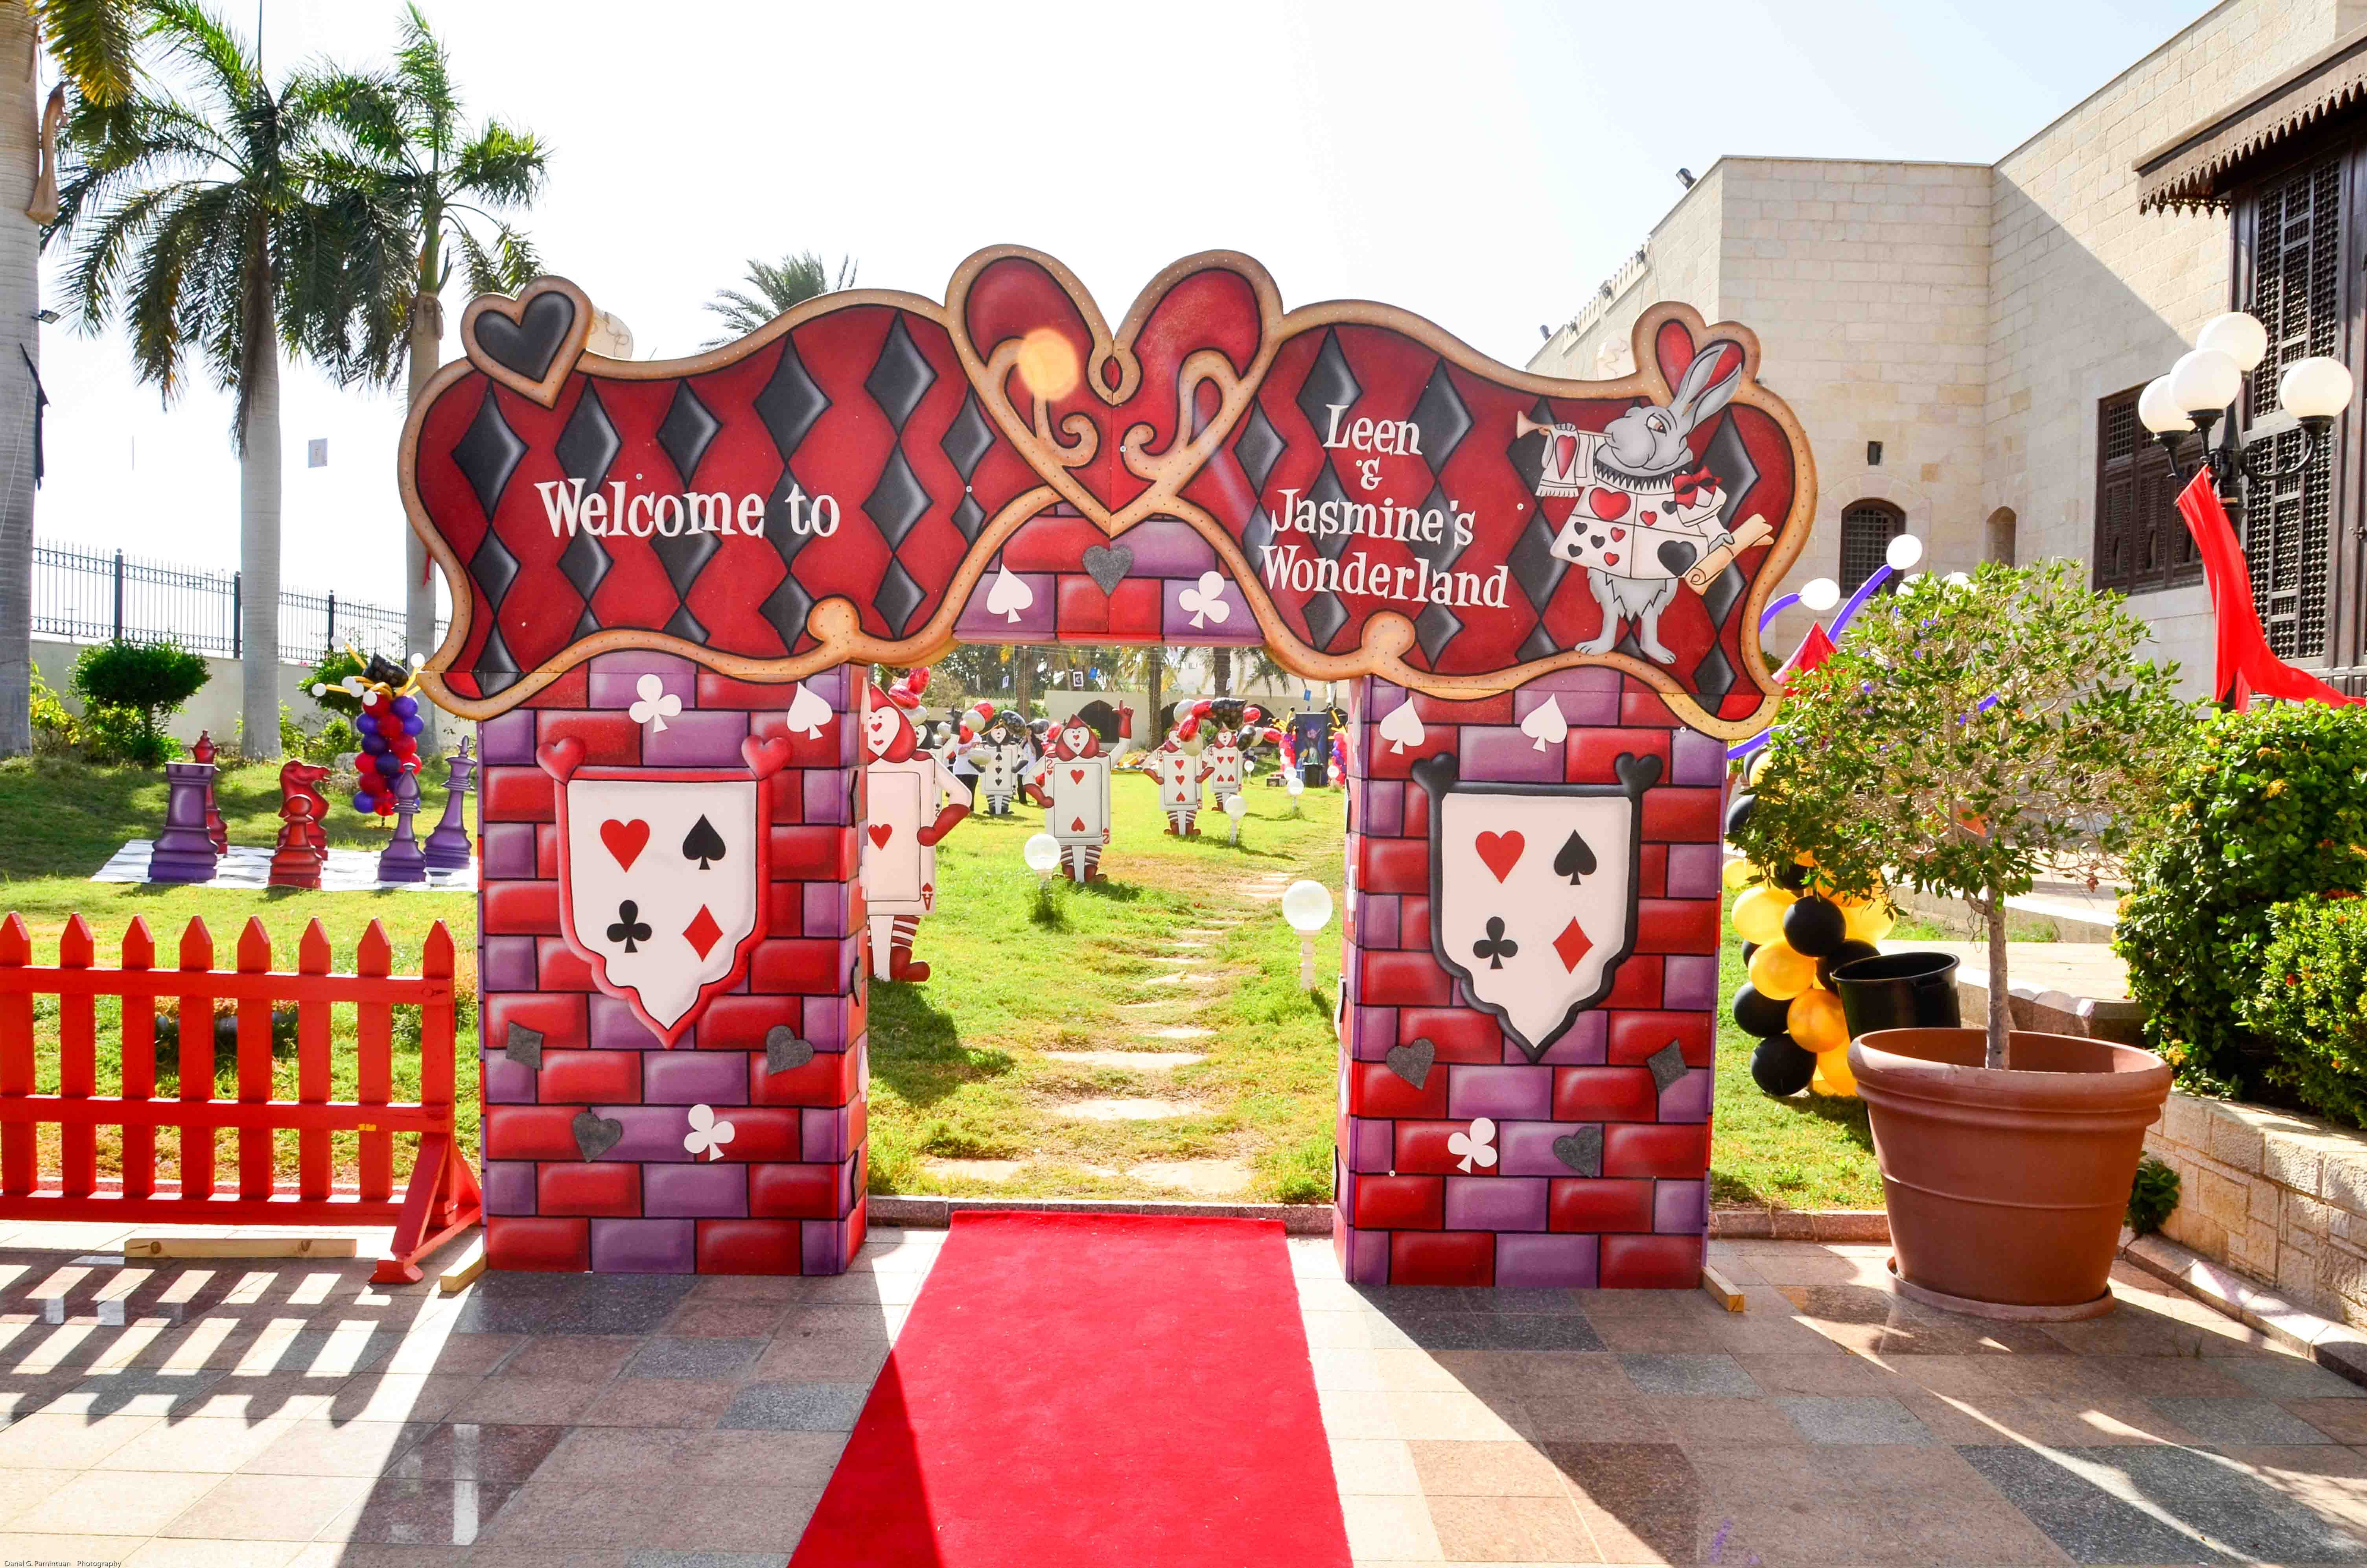 Entrance Panels By Fantasypartyksa To Create The Right Welcome Feeling For Your Guests Fantasy Party Party Planning Party Supplies